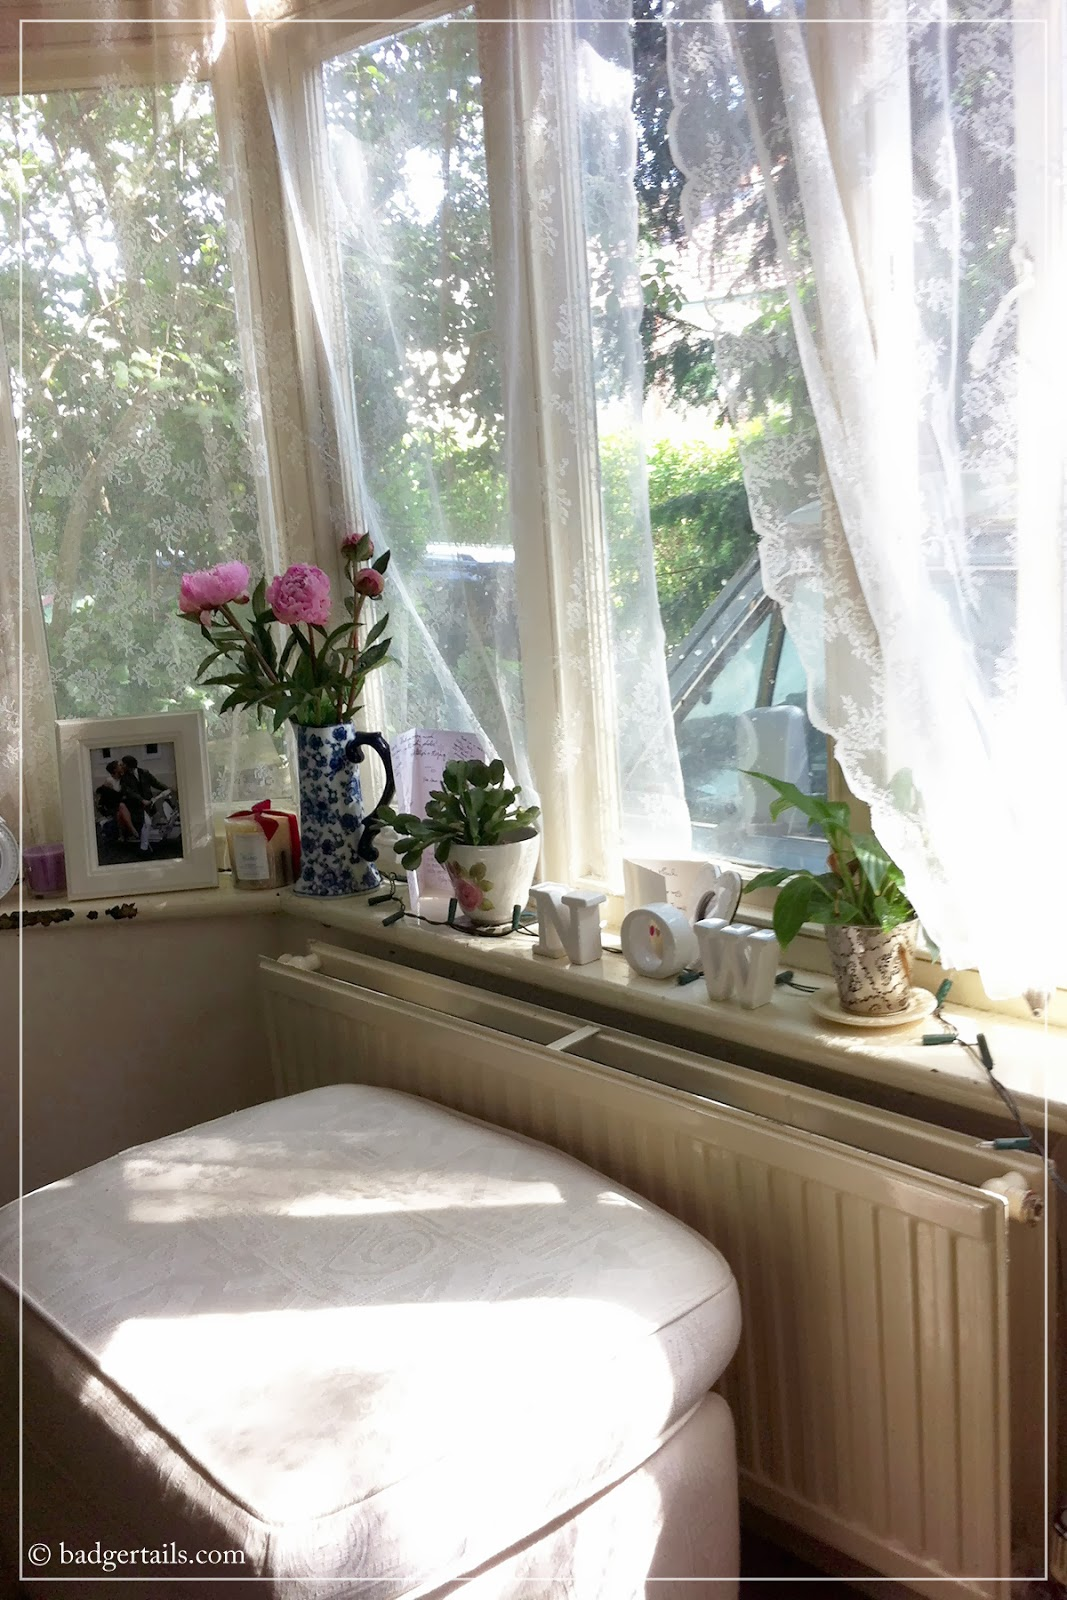 lace curtains blowing in summer breeze window